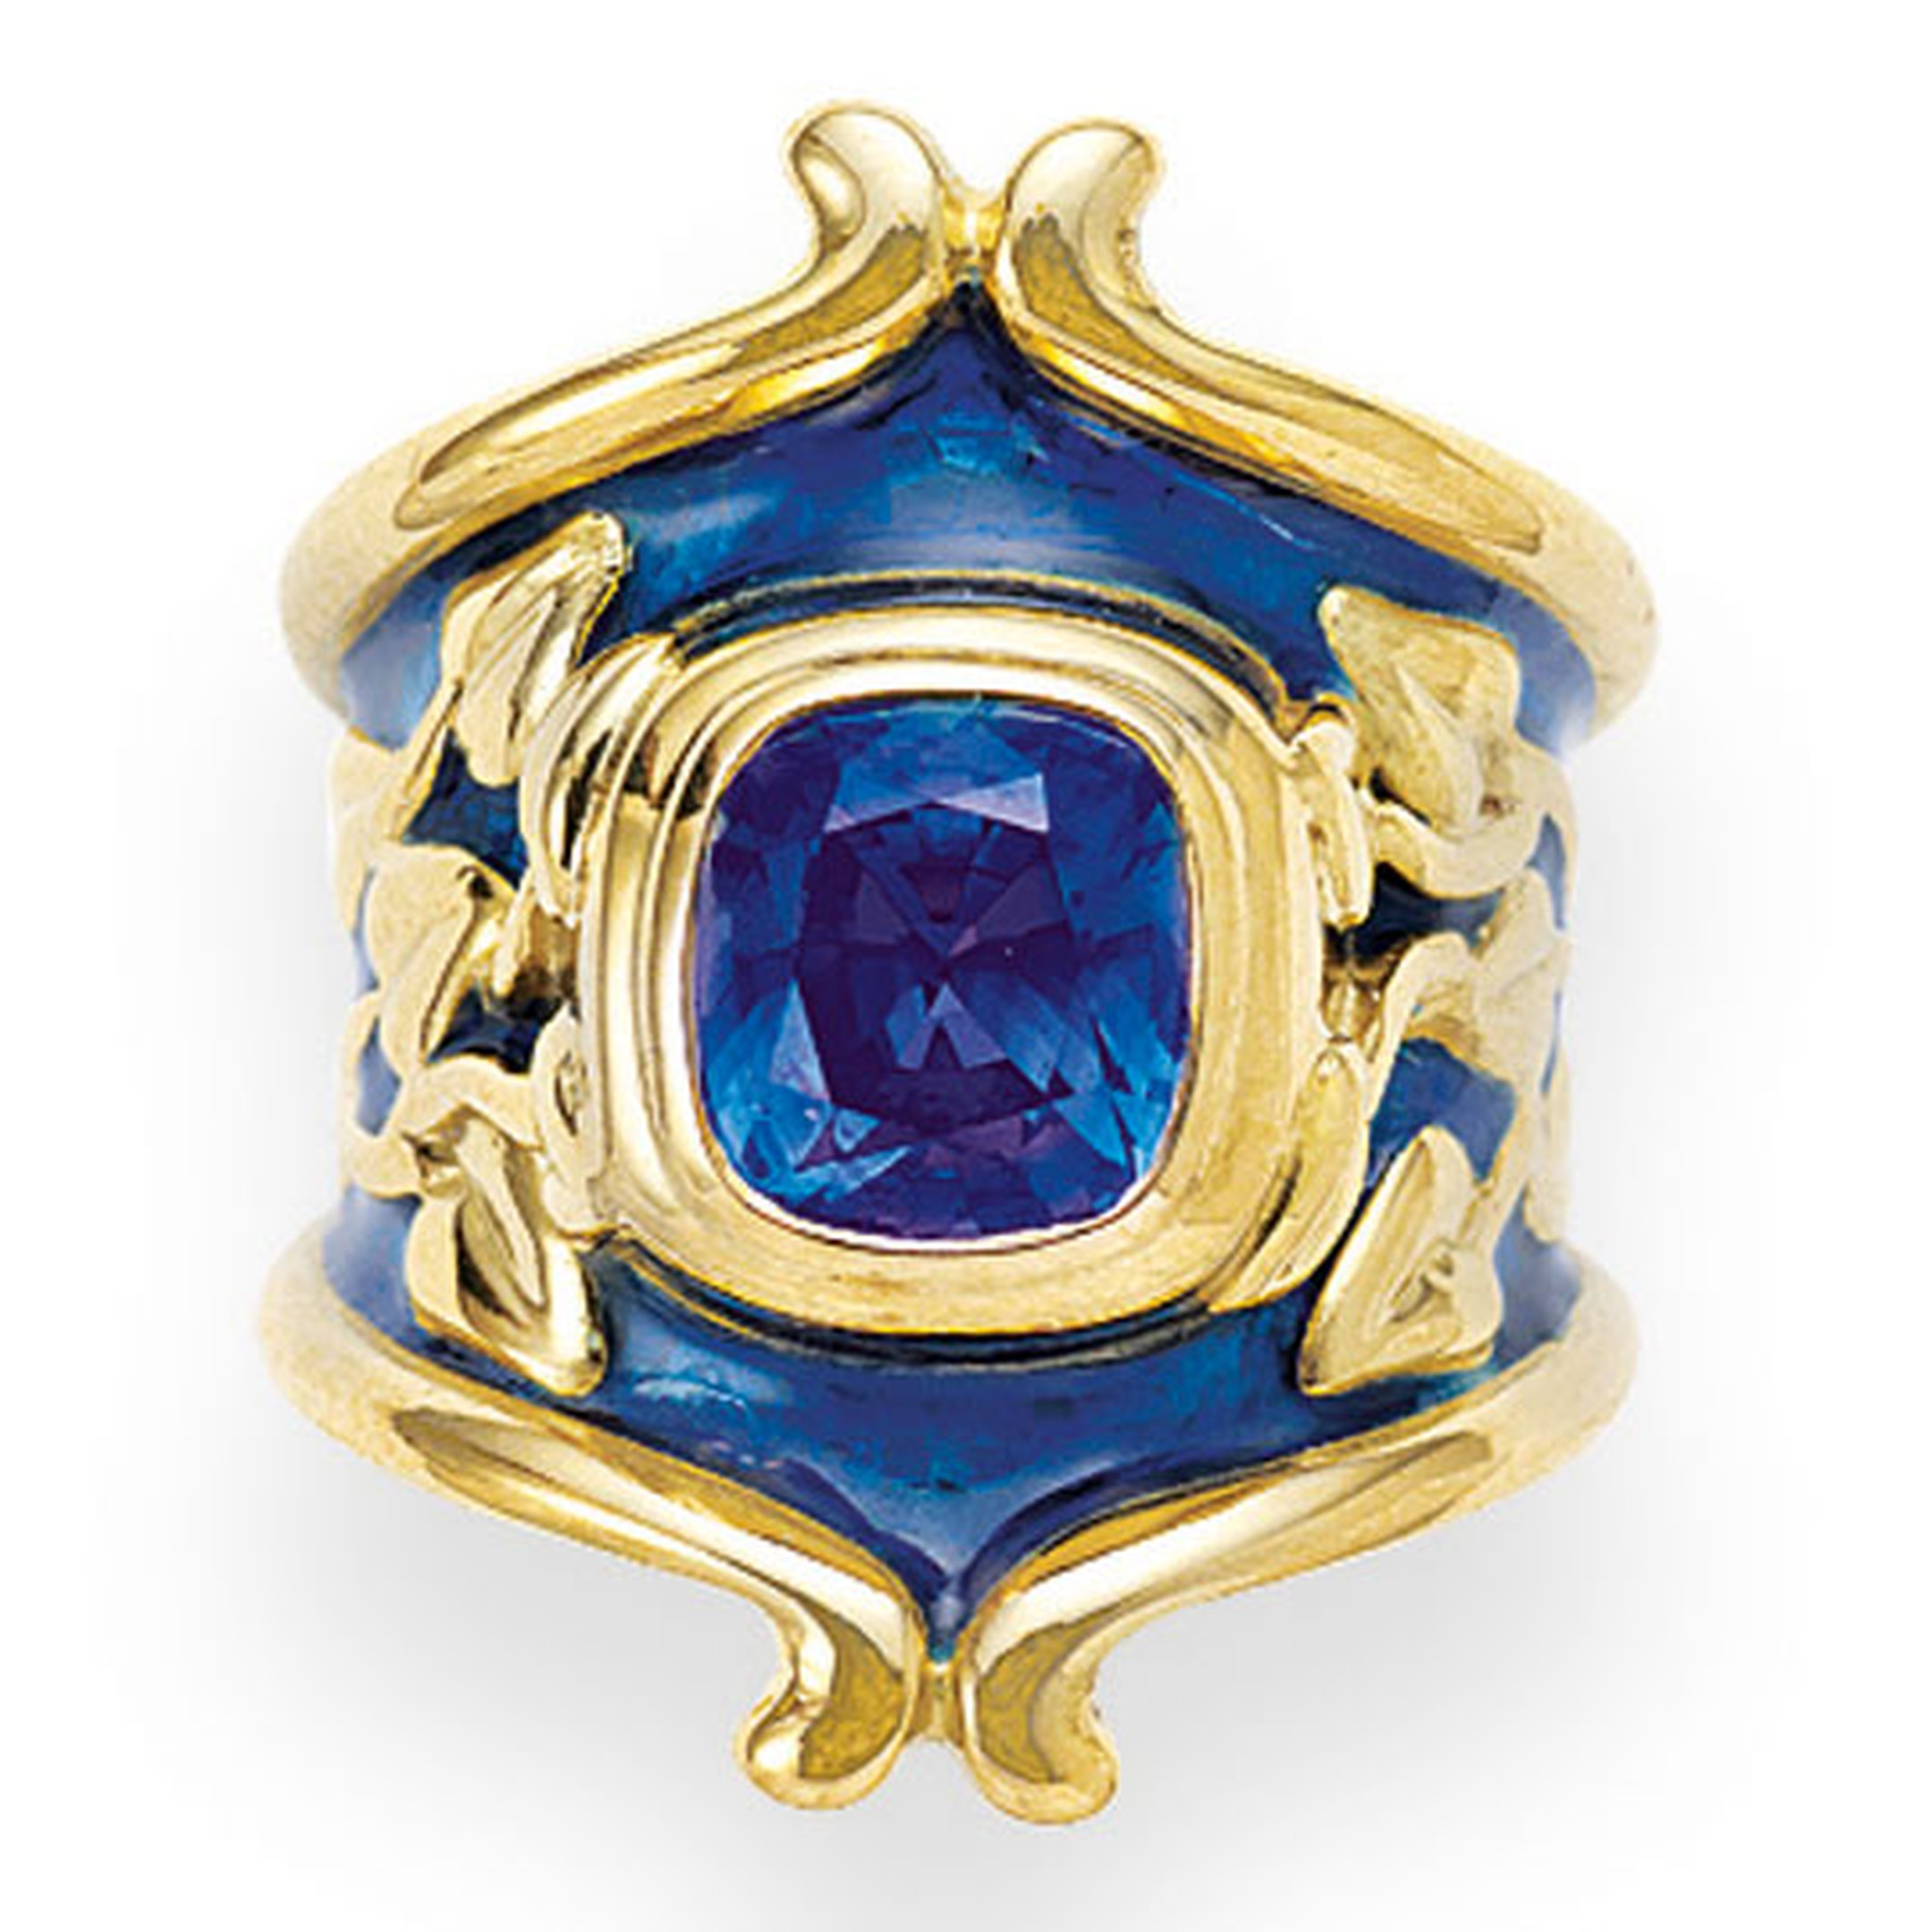 ELIZABETH GAGE, Heliotrope Ring, deep blue sapphire with Royal blue enamel, decorated with carved gold myrtle leaves. £18,600